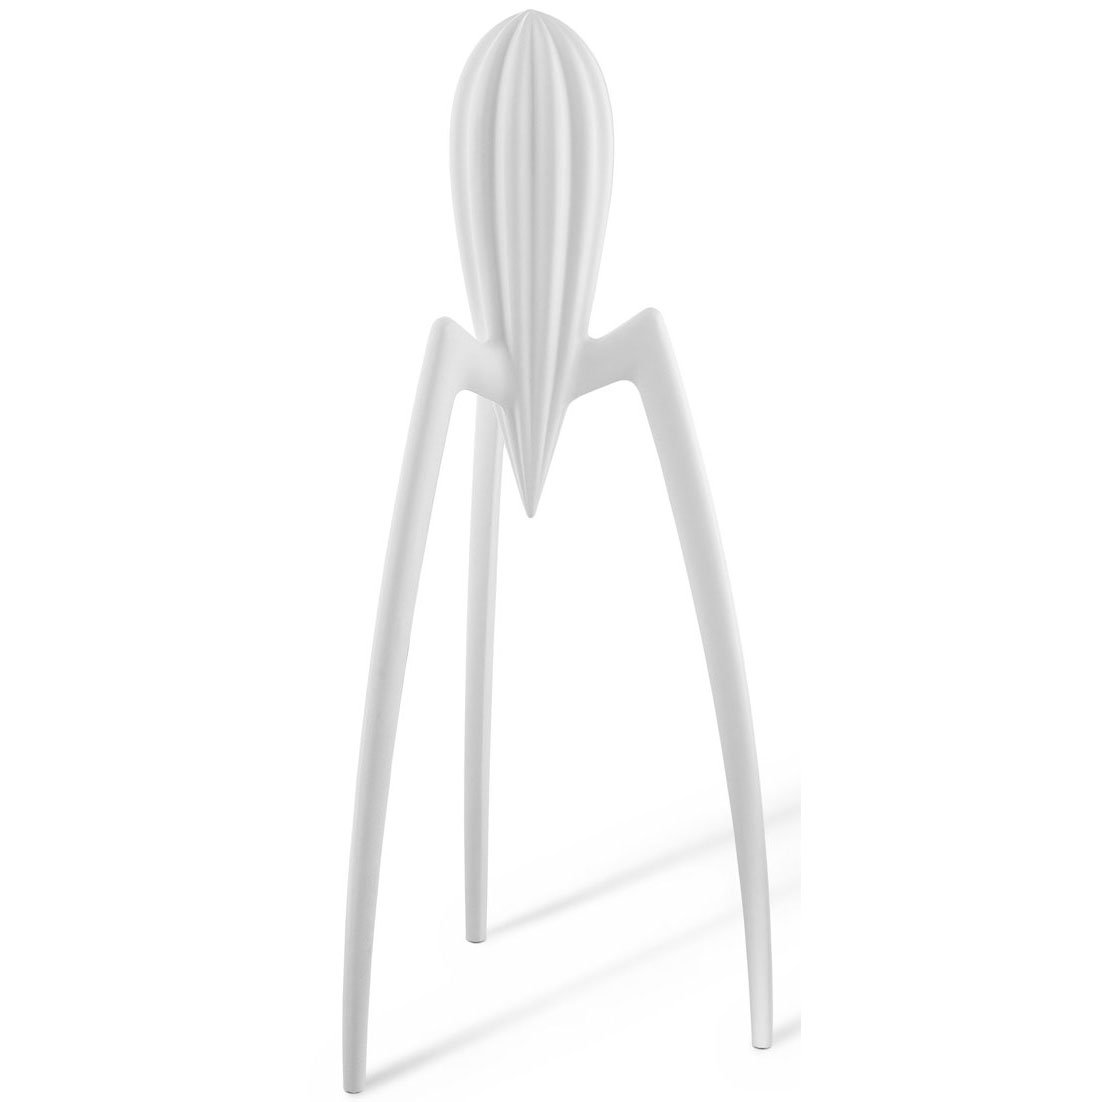 Alessi - Philippe Starck - Juicy Salif Citrus Squeezer White